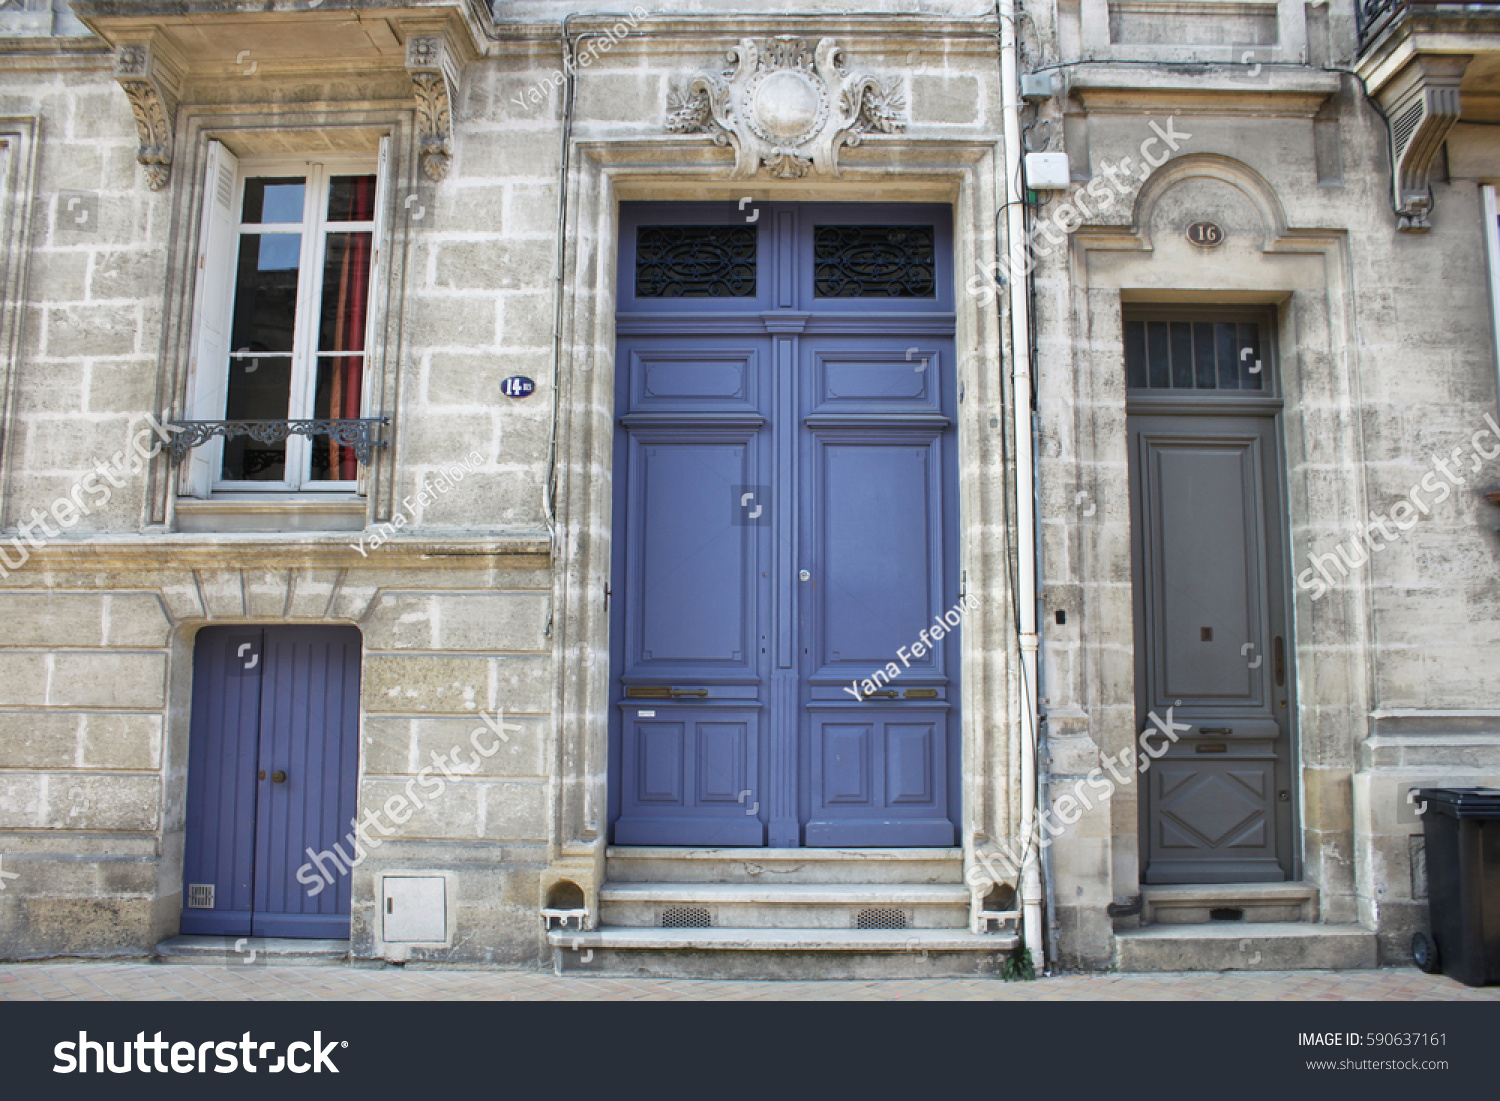 Vintage building facade windows doors old stock photo for W architecture bordeaux